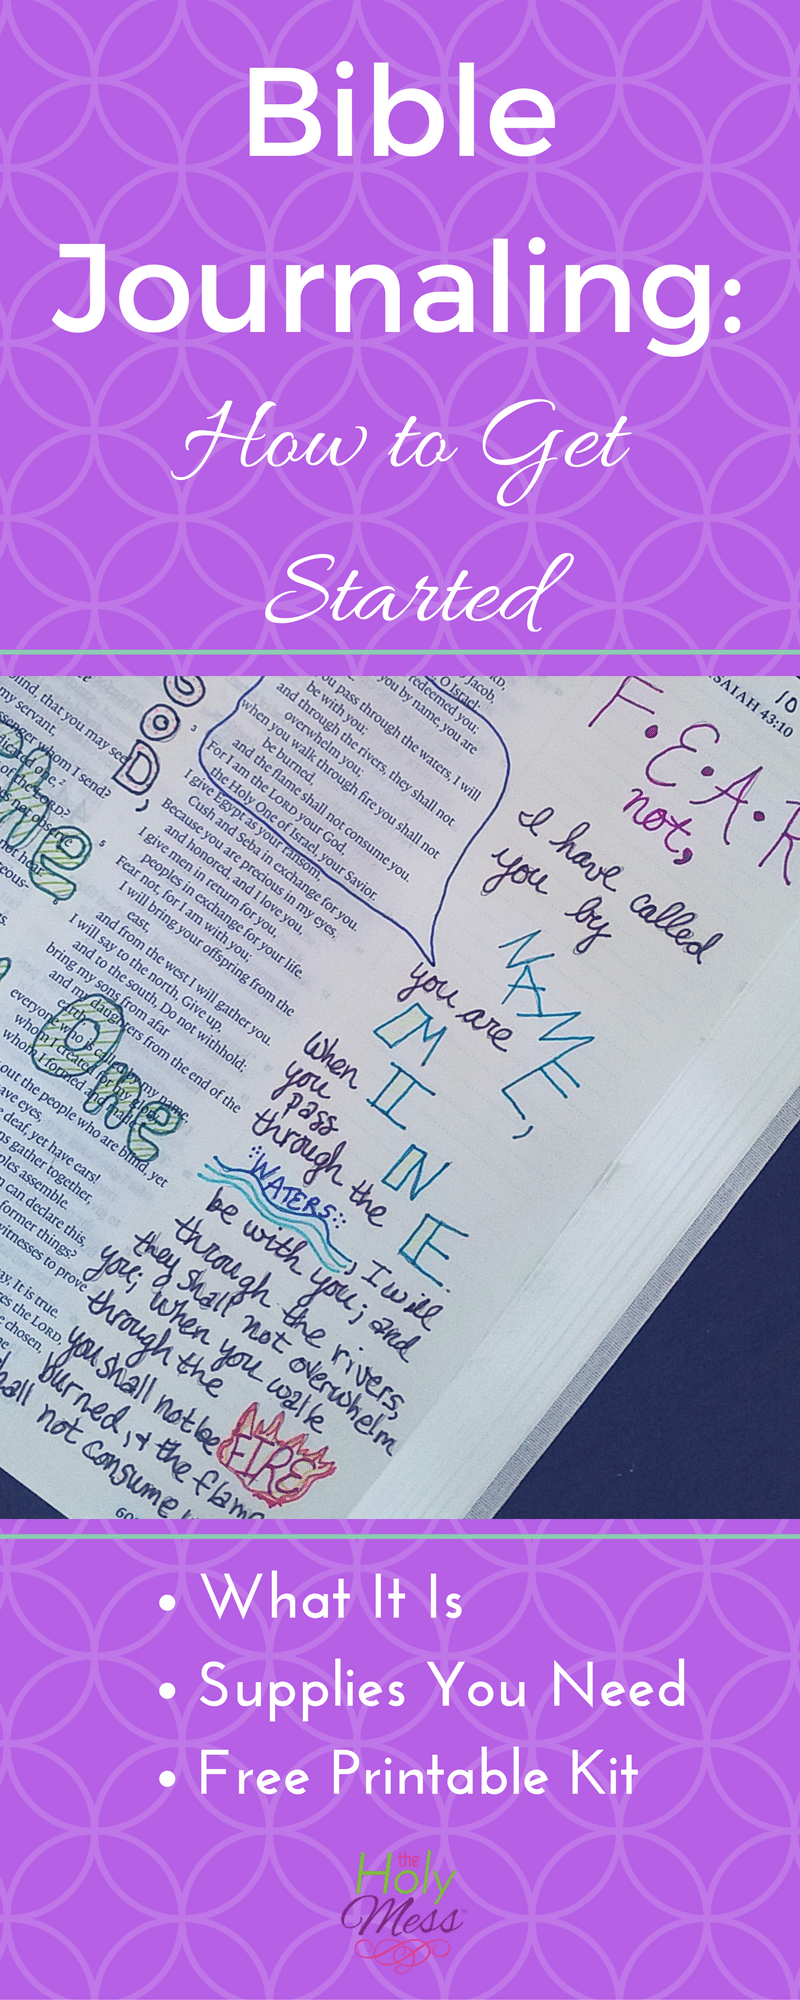 Bible Journaling: How to Get Started